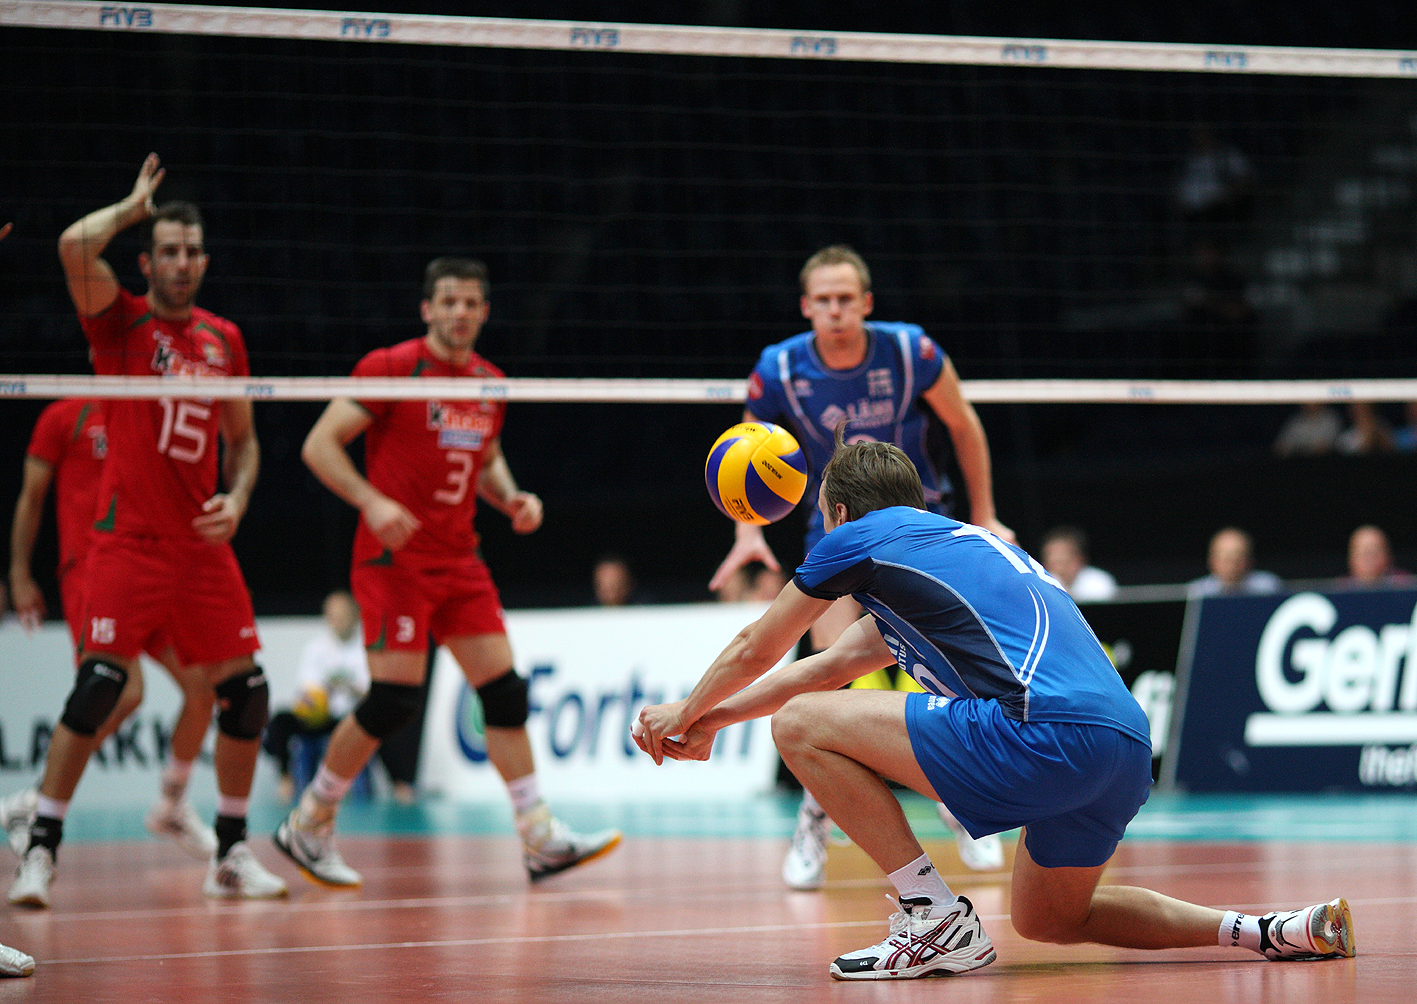 http://www.fivb.org/Vis2009/Images/GetImage.asmx?No=201110827&maxsize=500